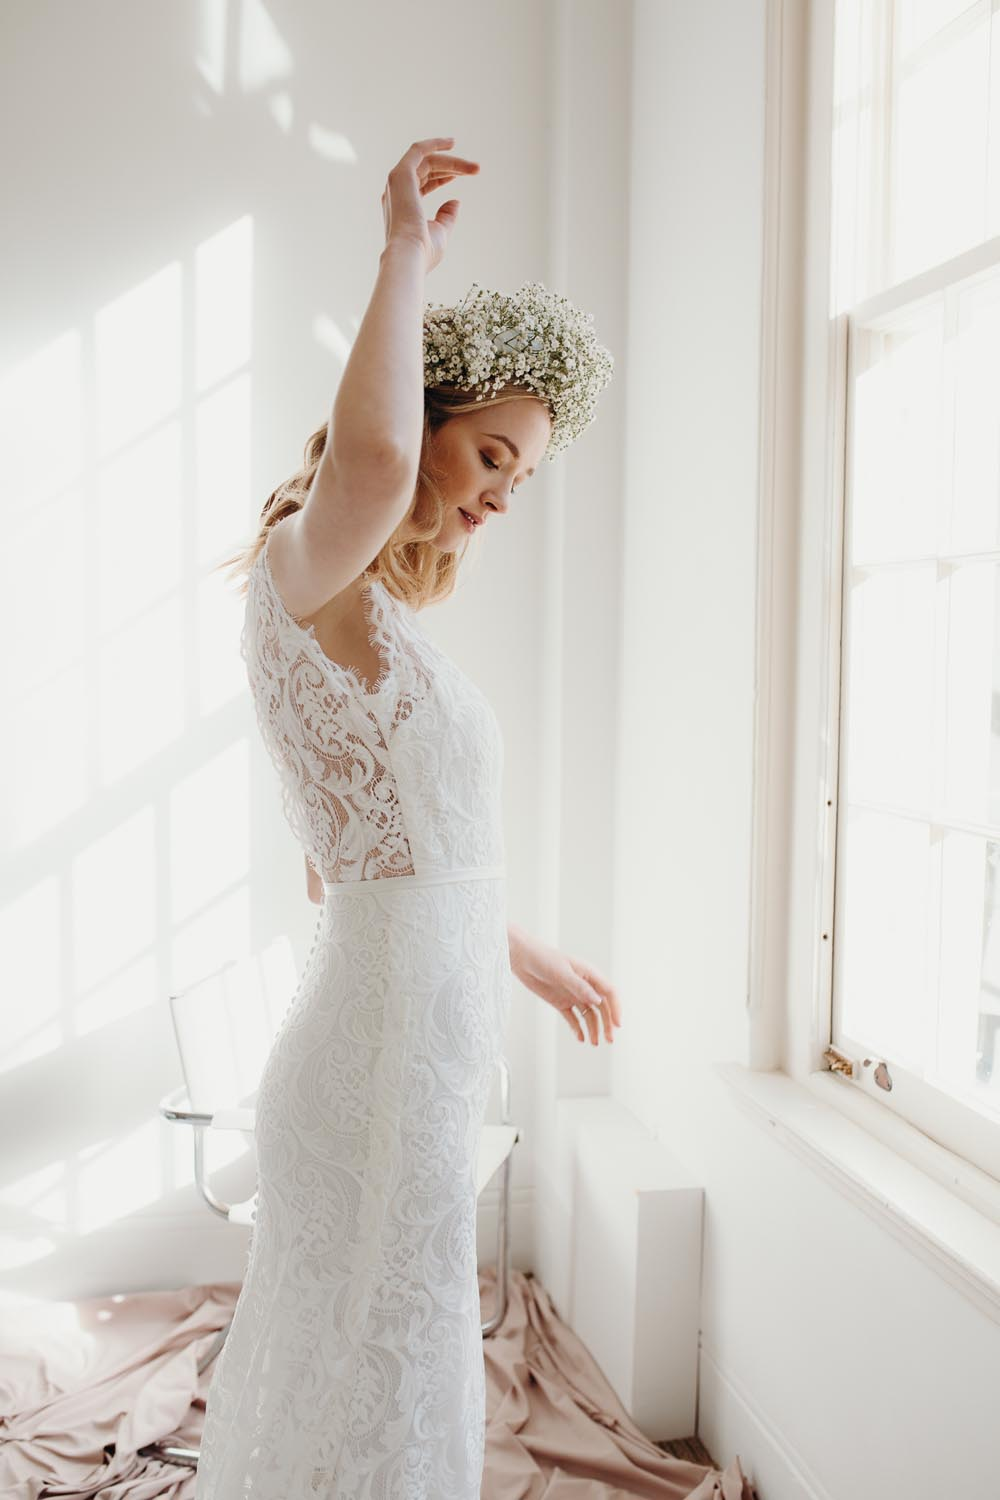 Bluebell wedding dress by Daisy